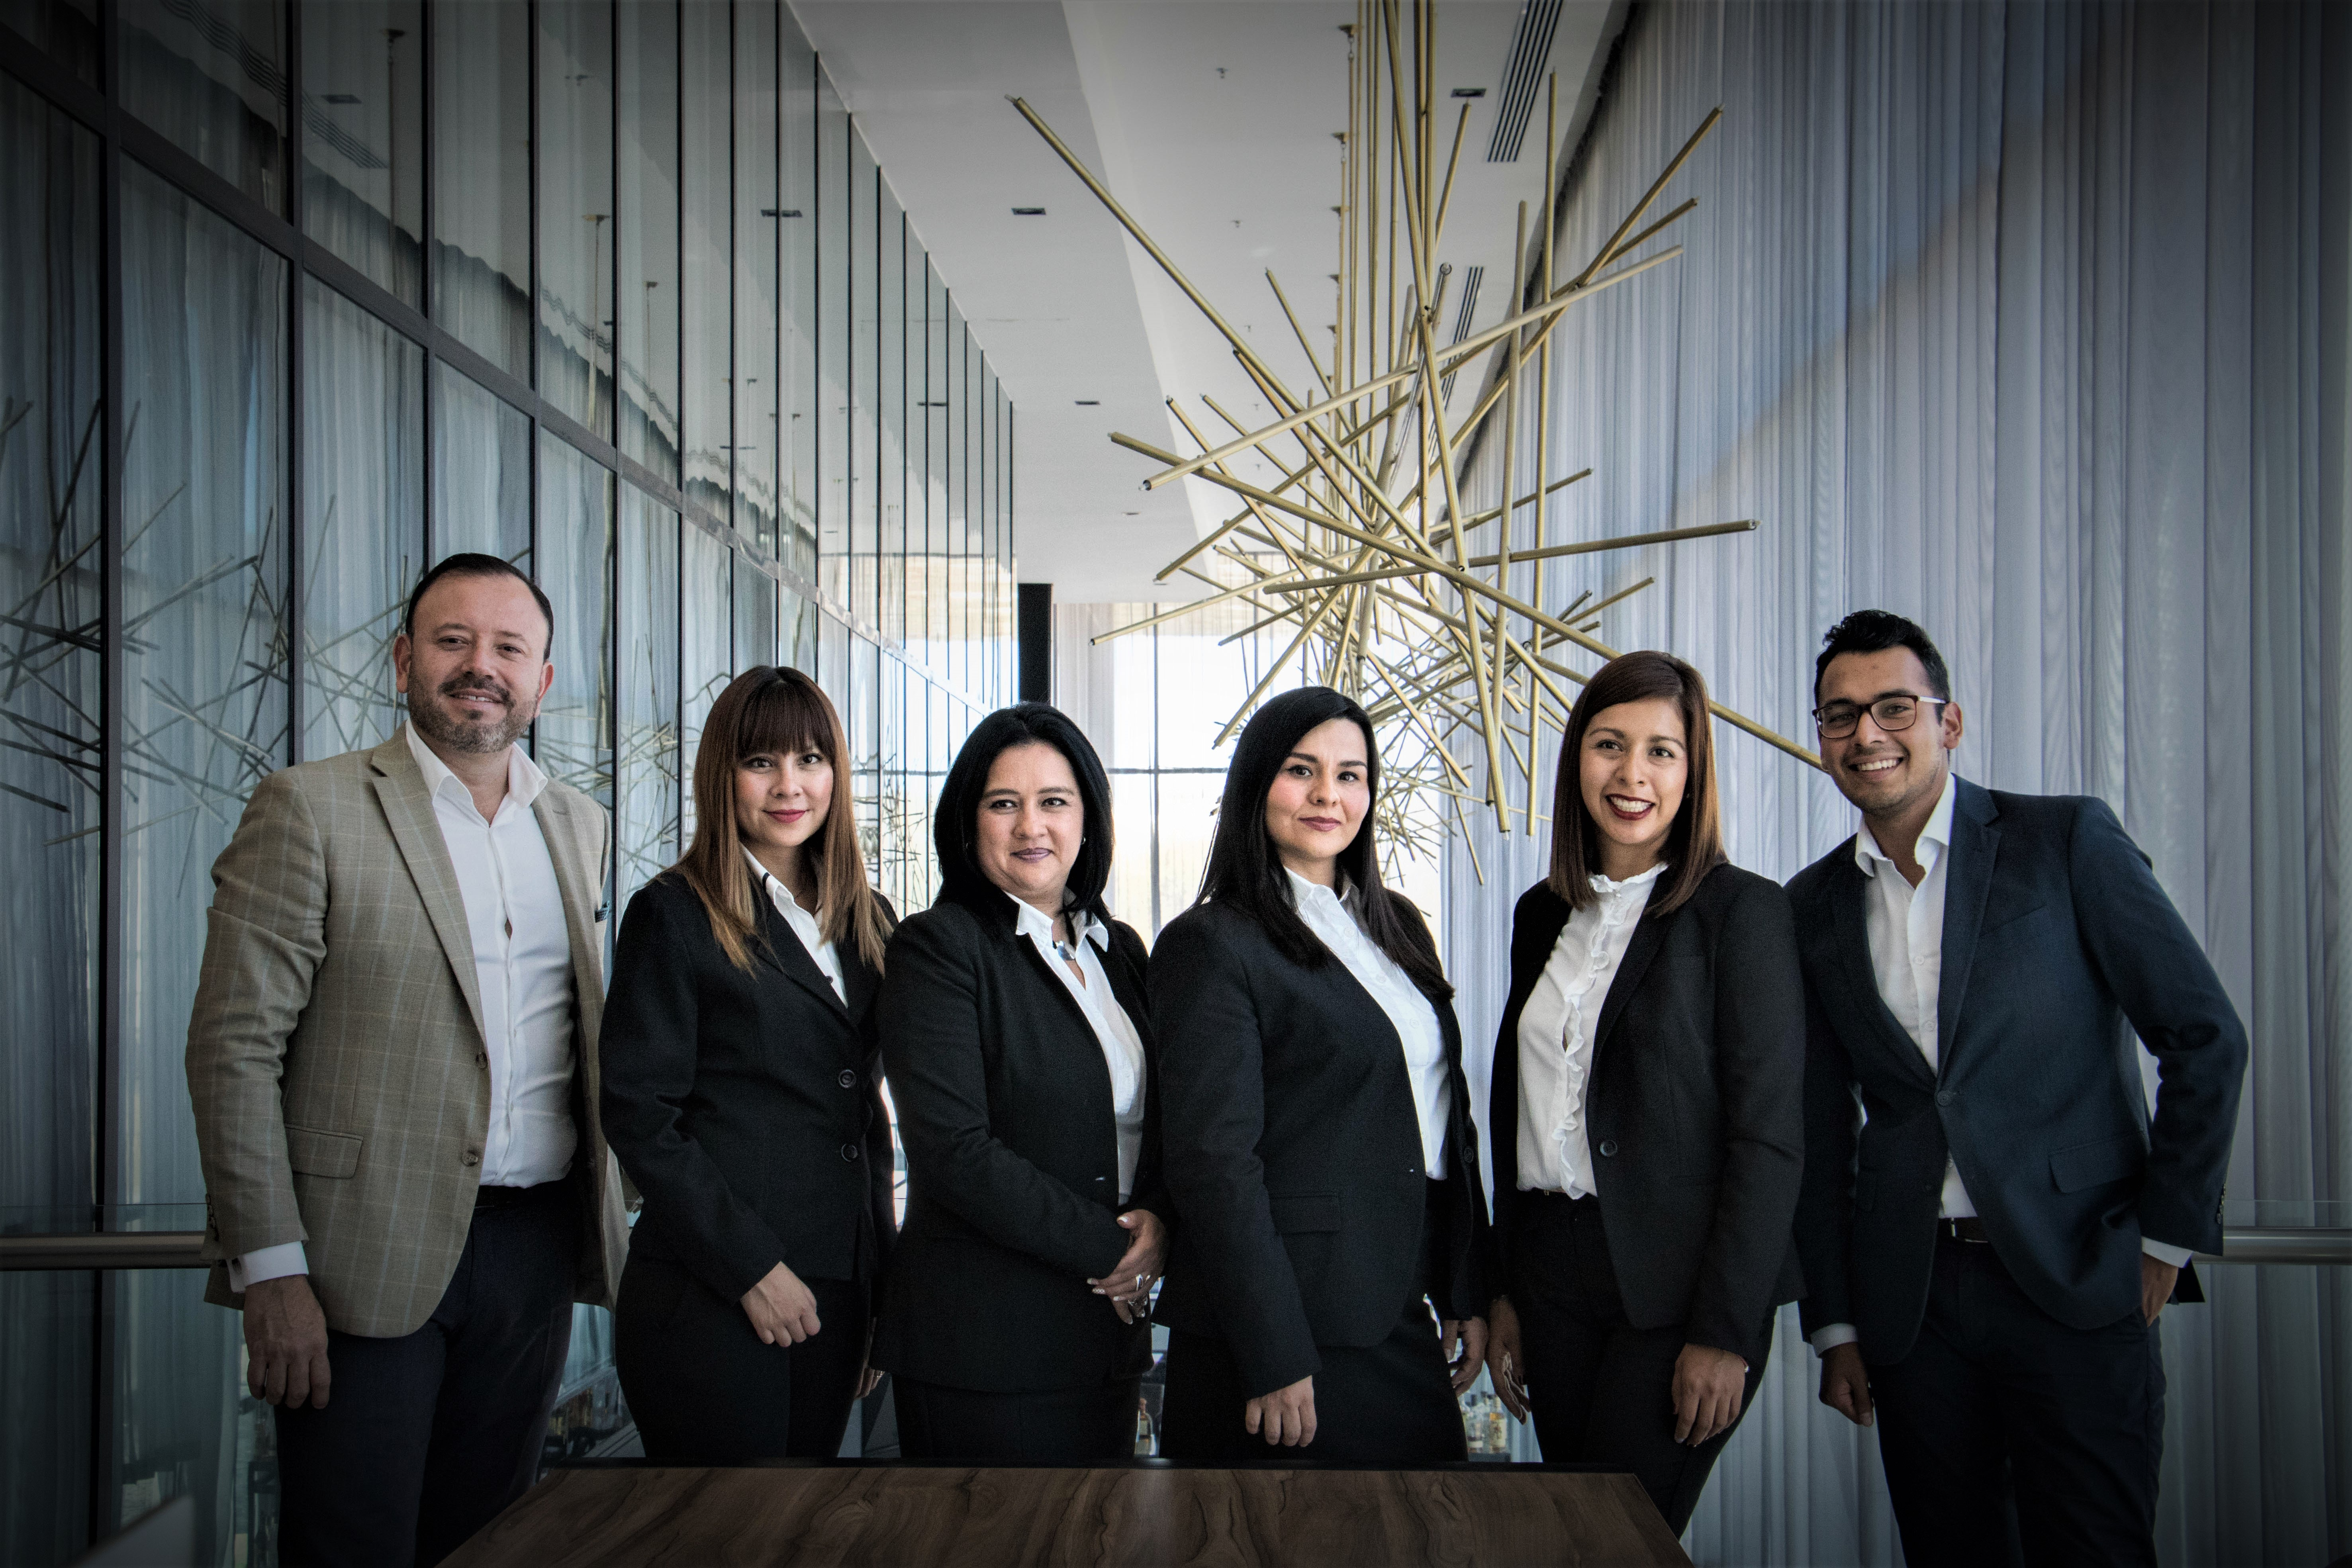 A team of six marketing professionals in a business lobby.